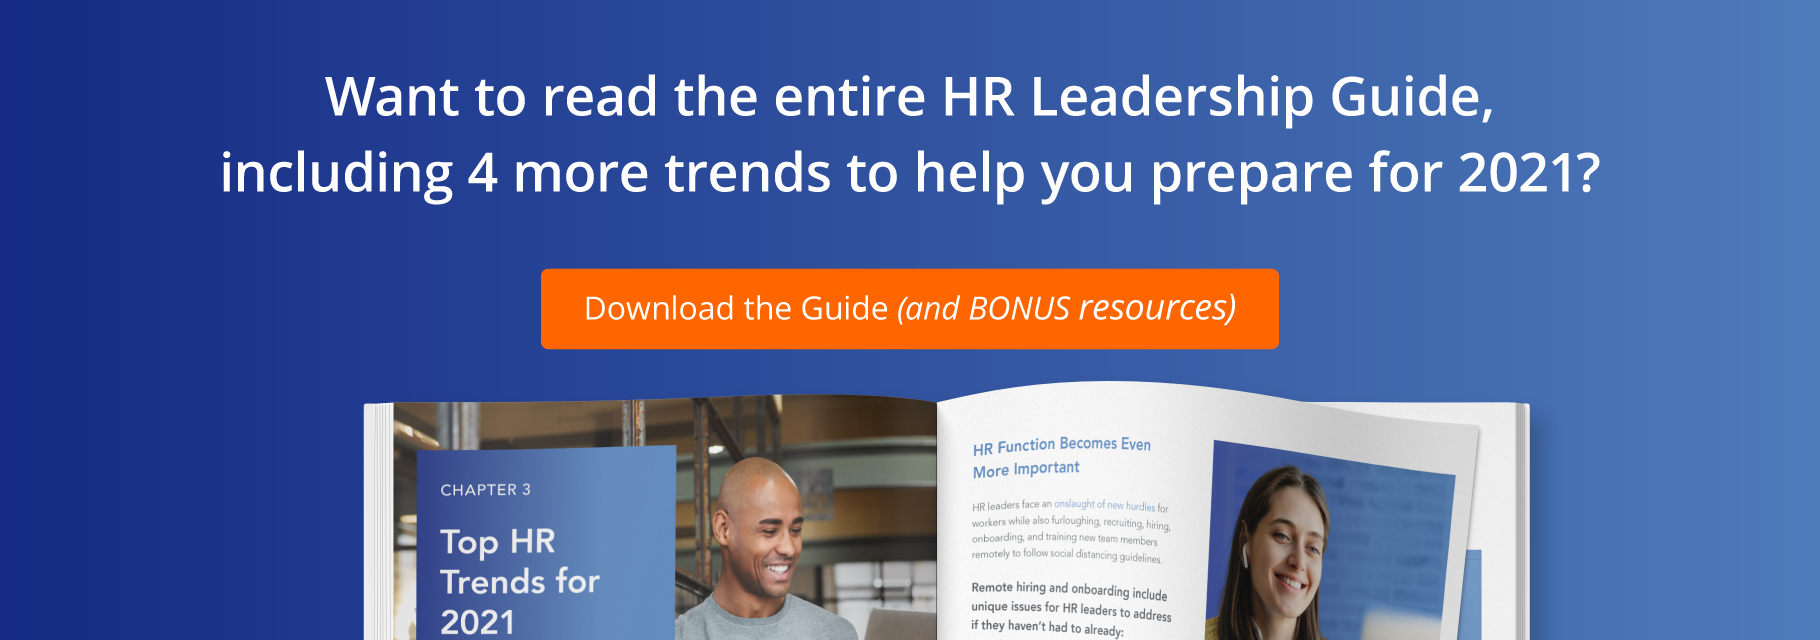 HR Leadership Guide CTA